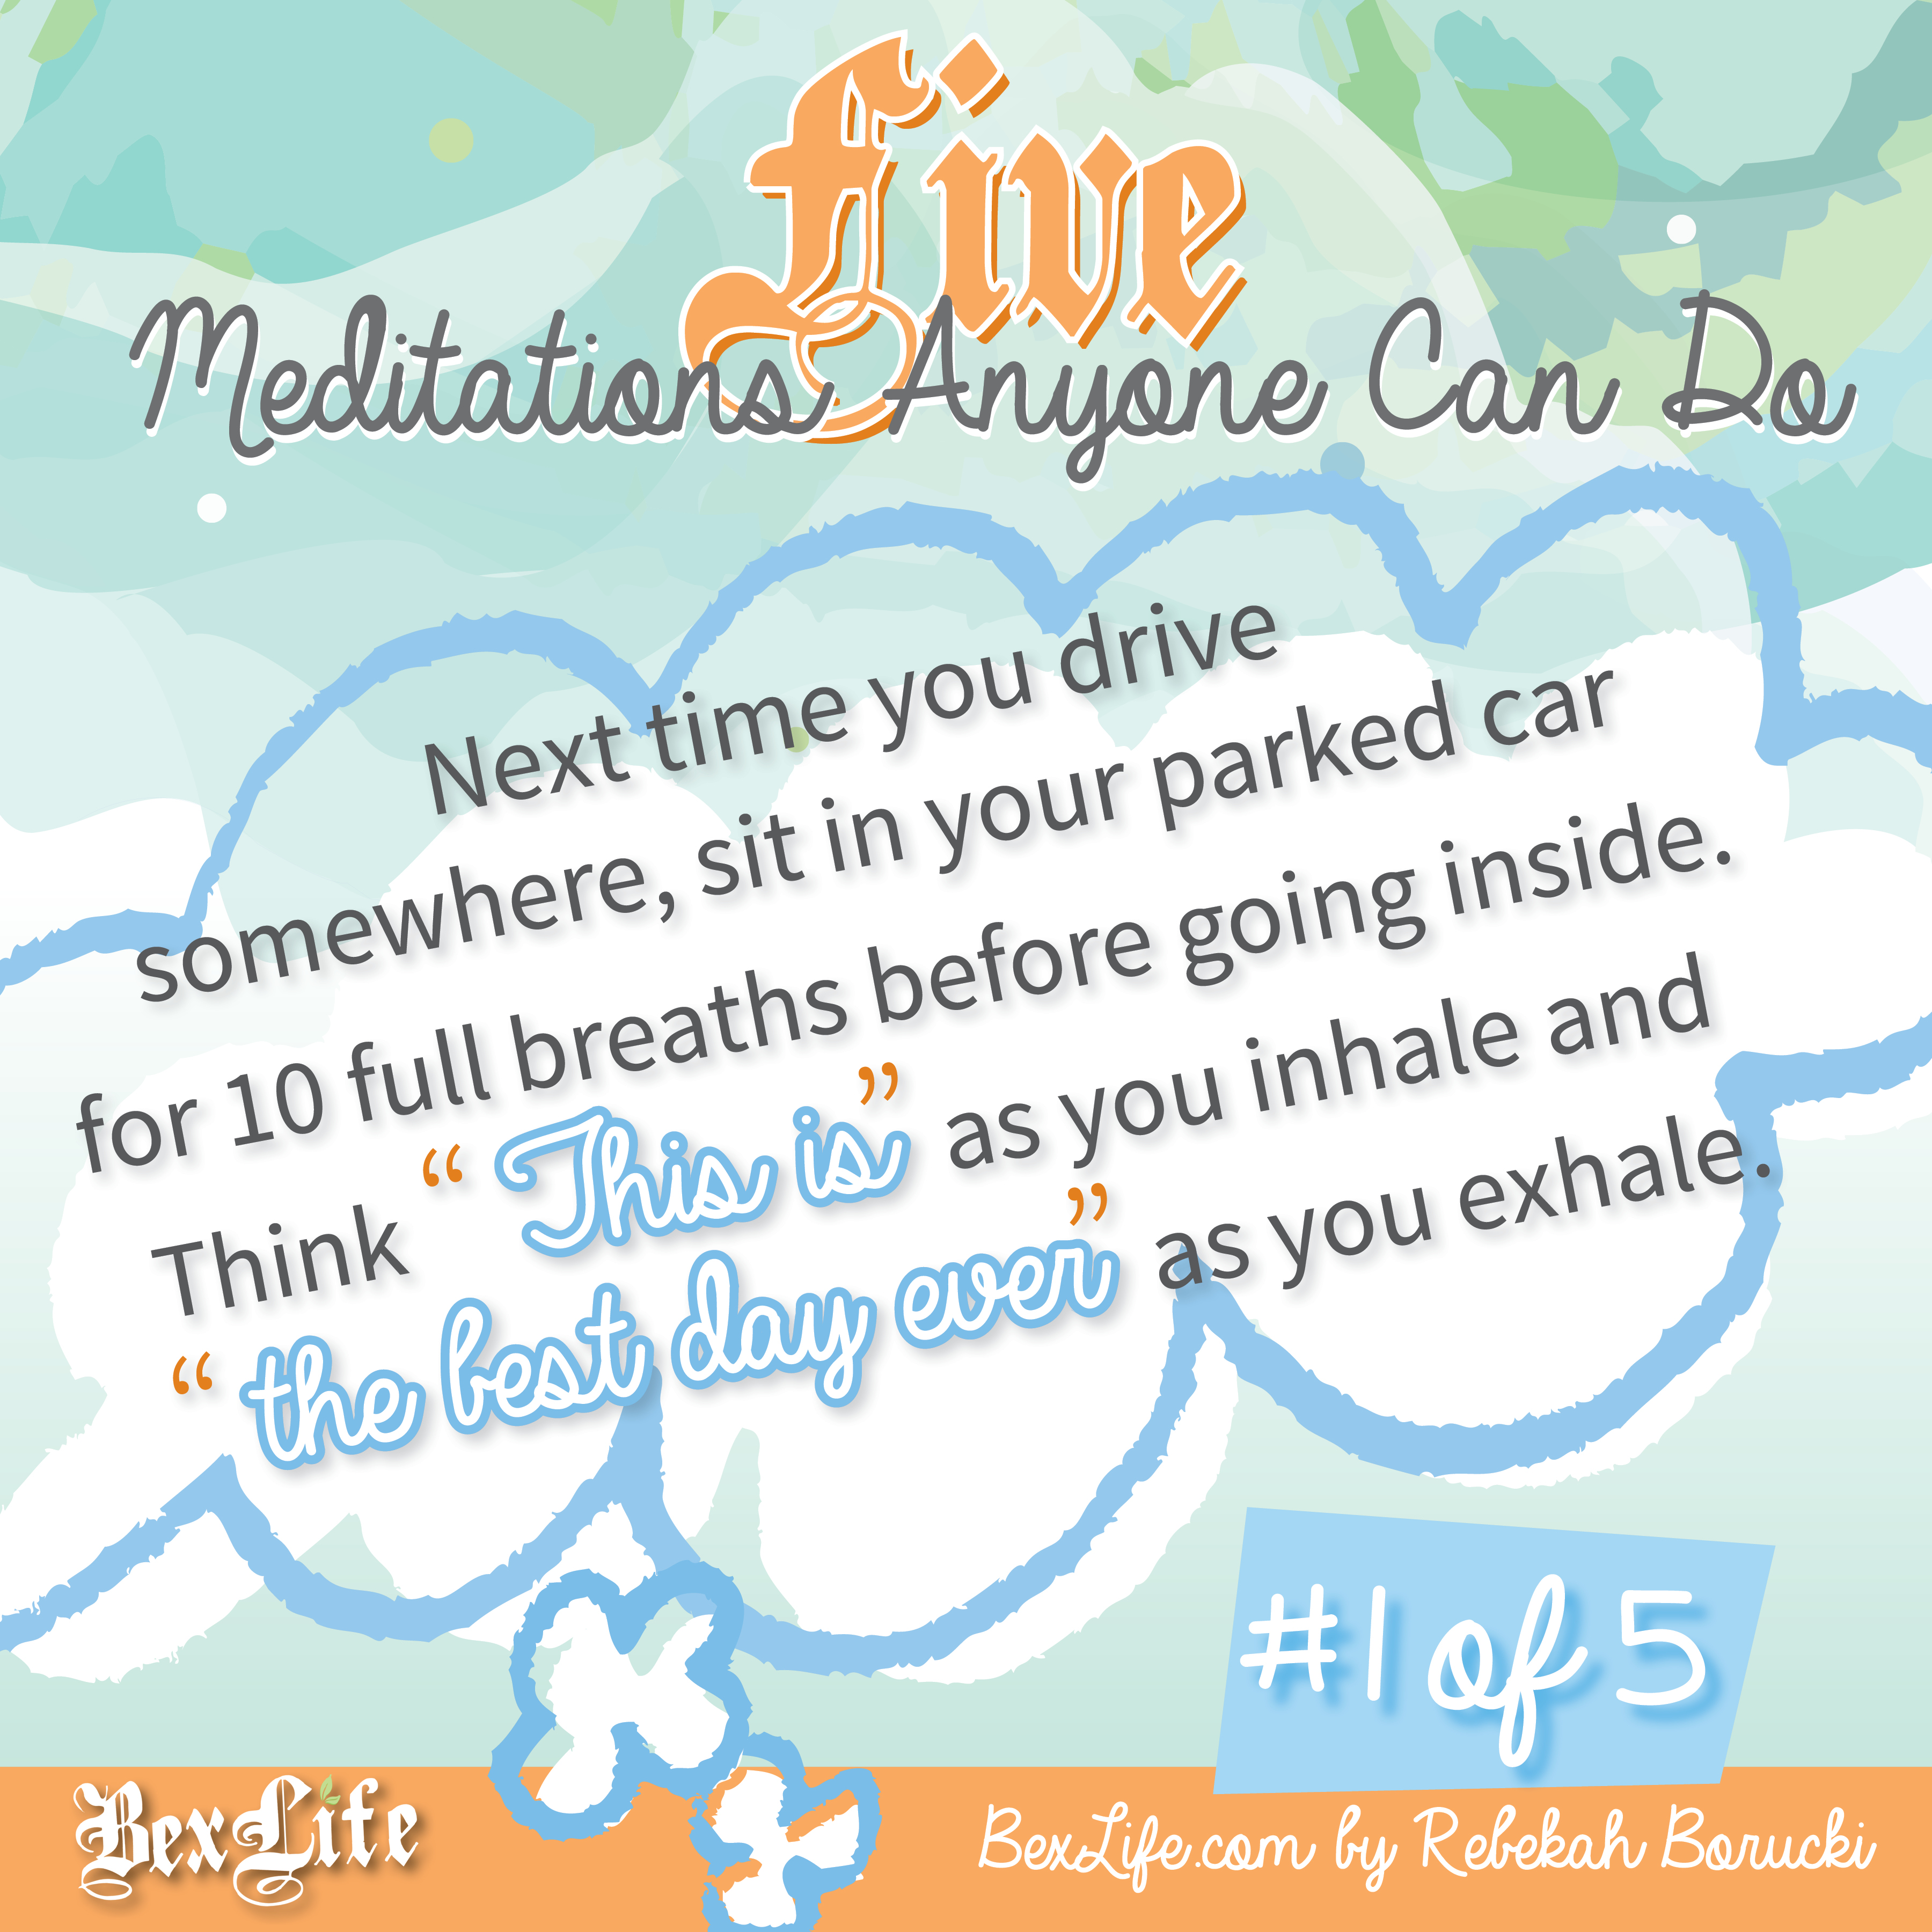 Meditation-Infographic-Series_RB